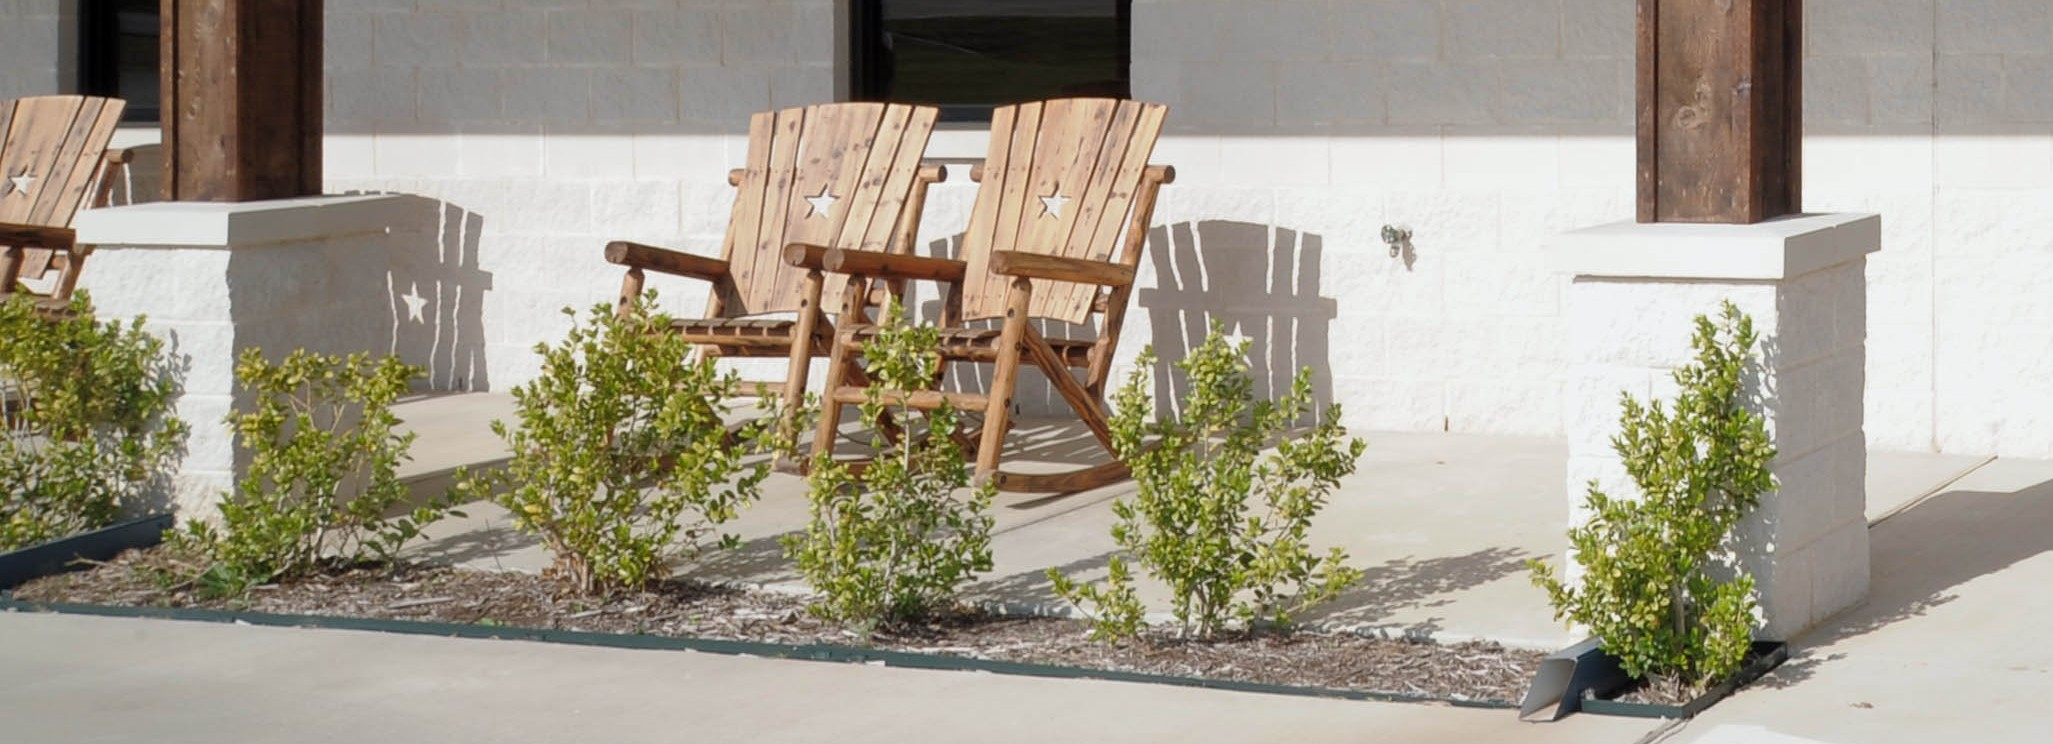 Southern Packaging Industrial Construction Front Porch Rockers